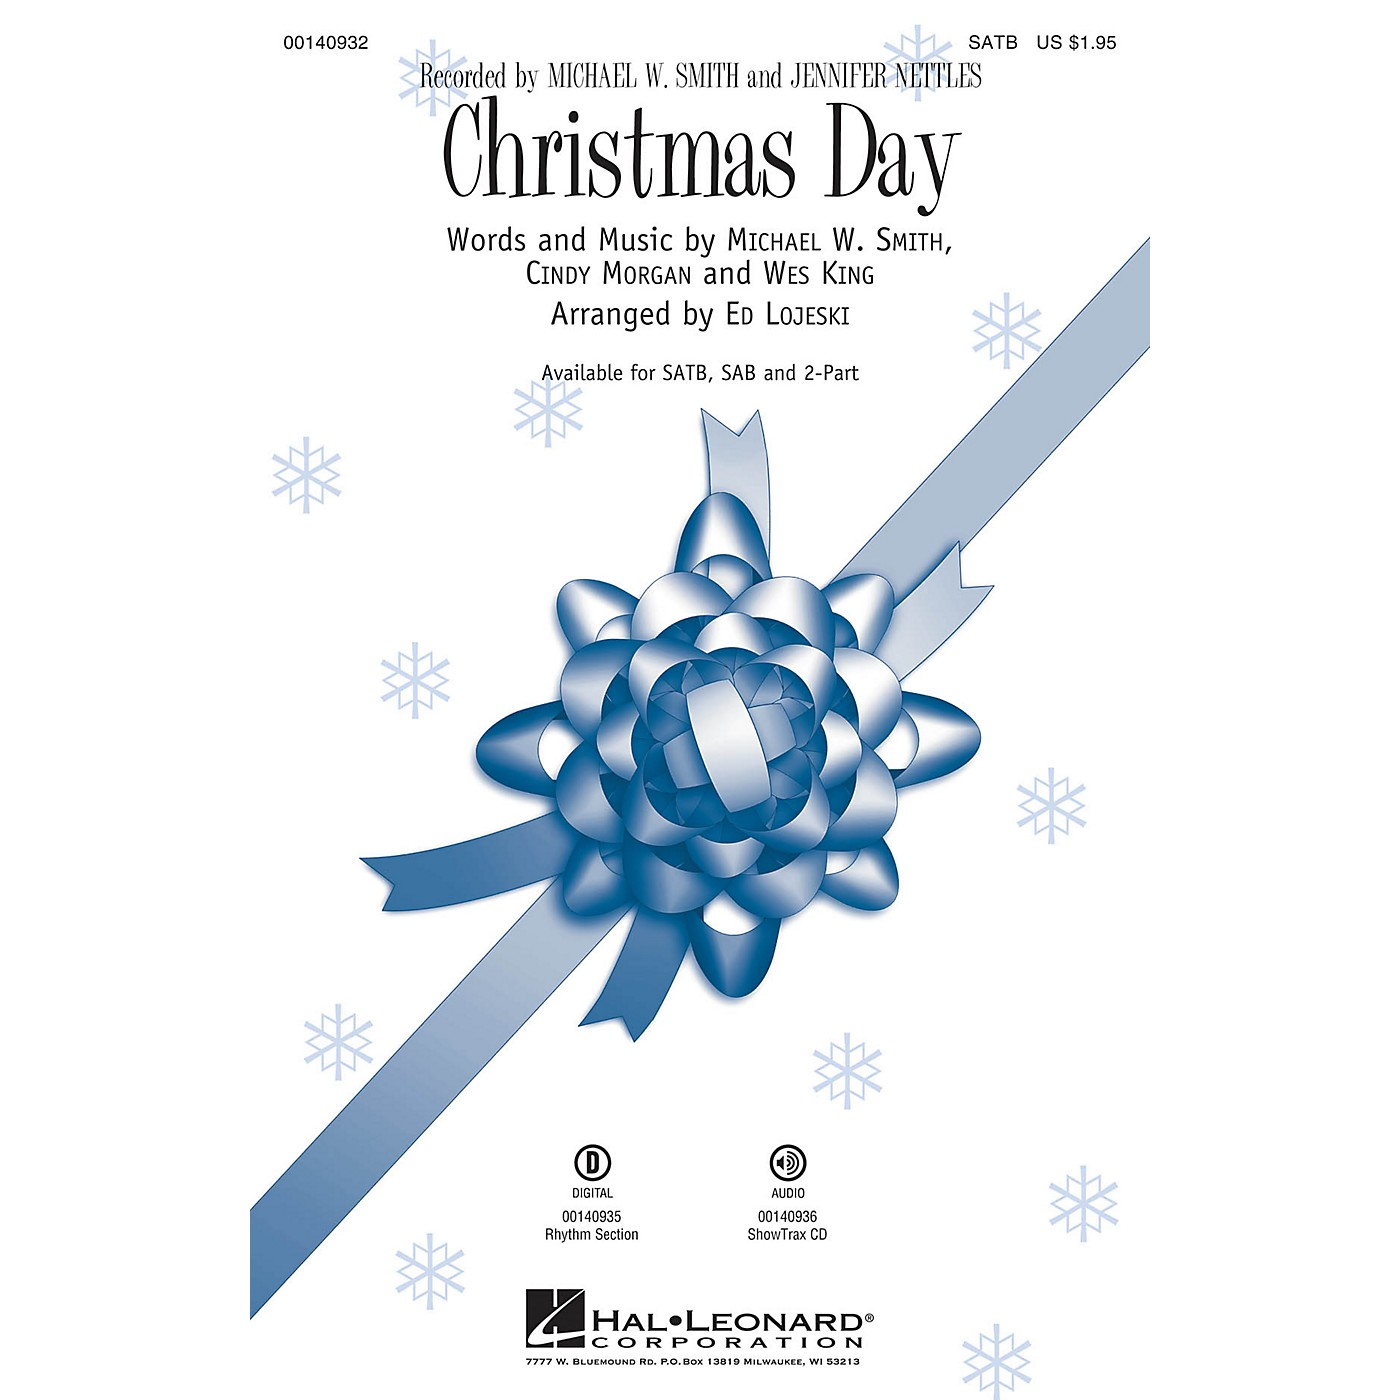 Hal Leonard Christmas Day SATB by Michael W. Smith arranged by Ed Lojeski thumbnail